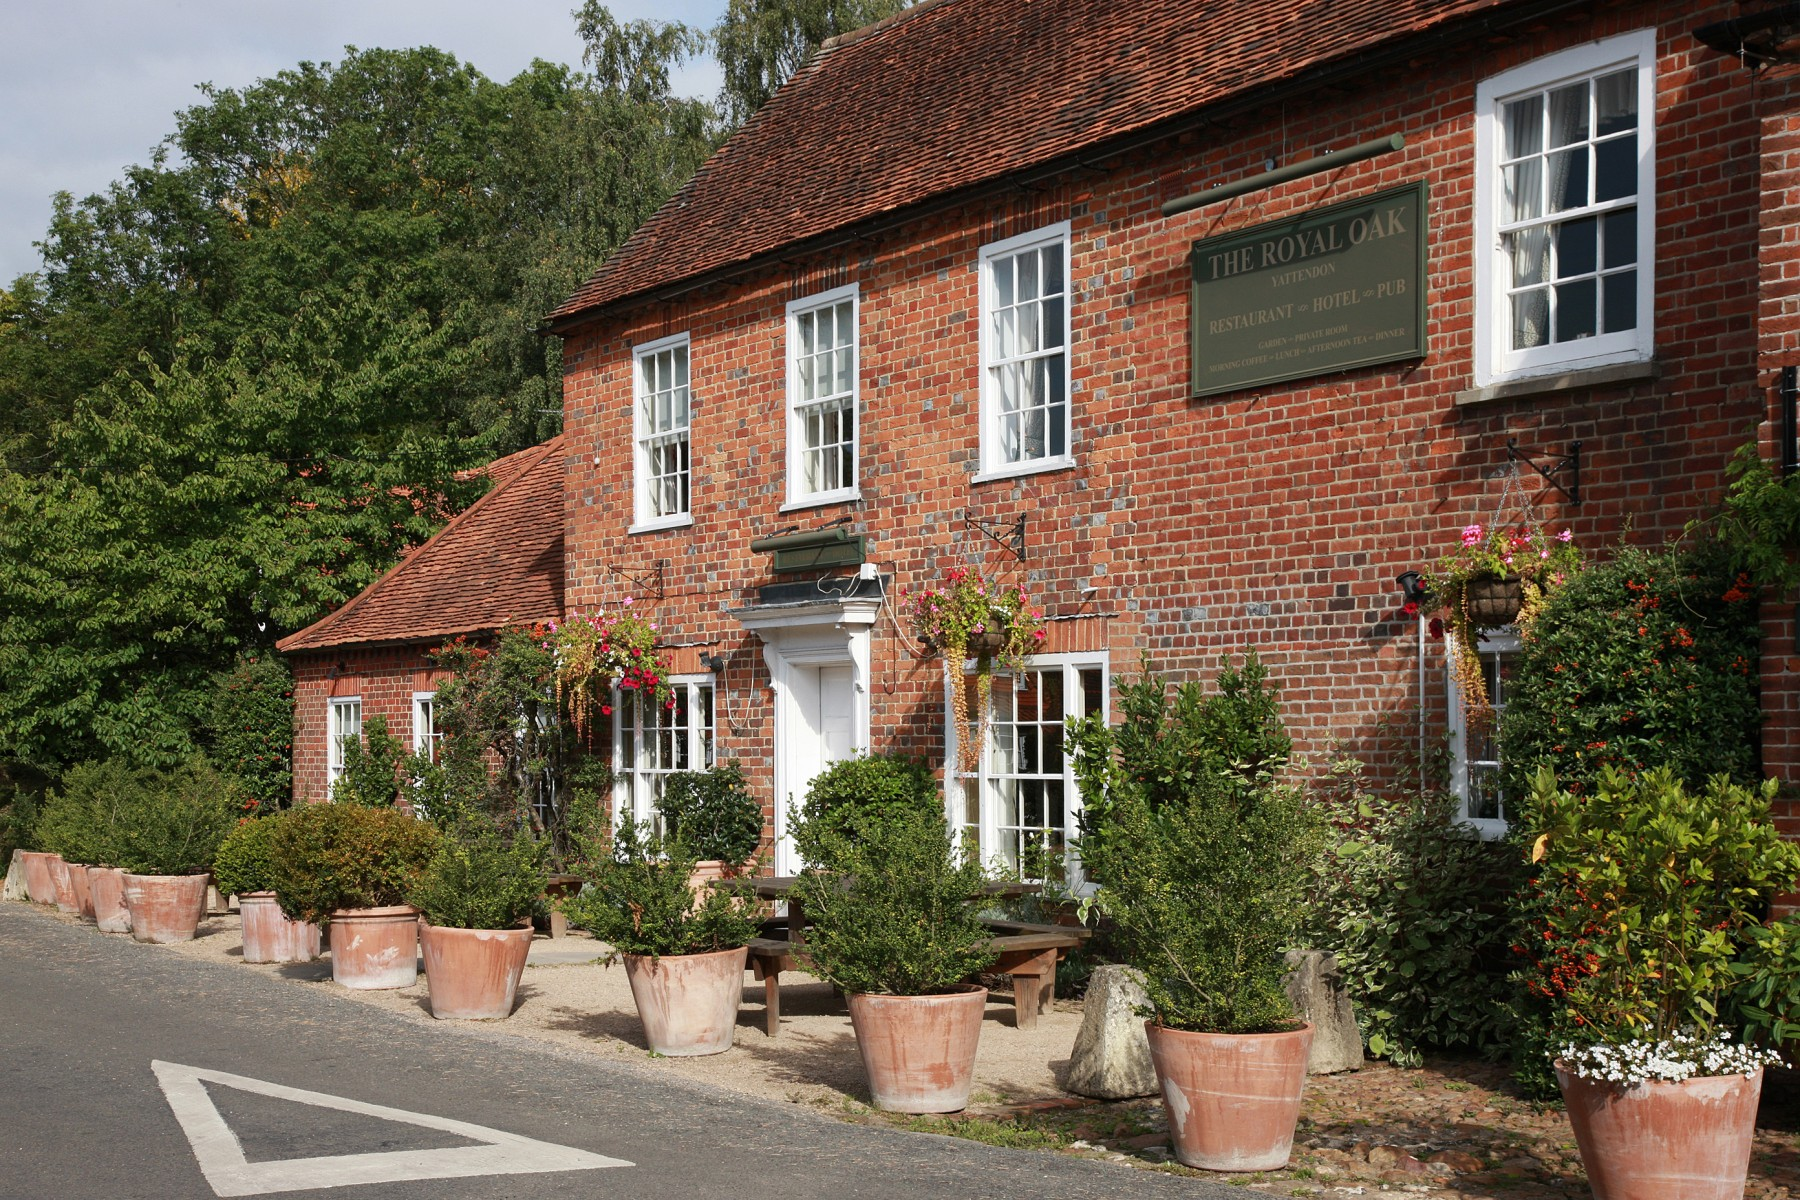 The Royal Oak, Yattendon